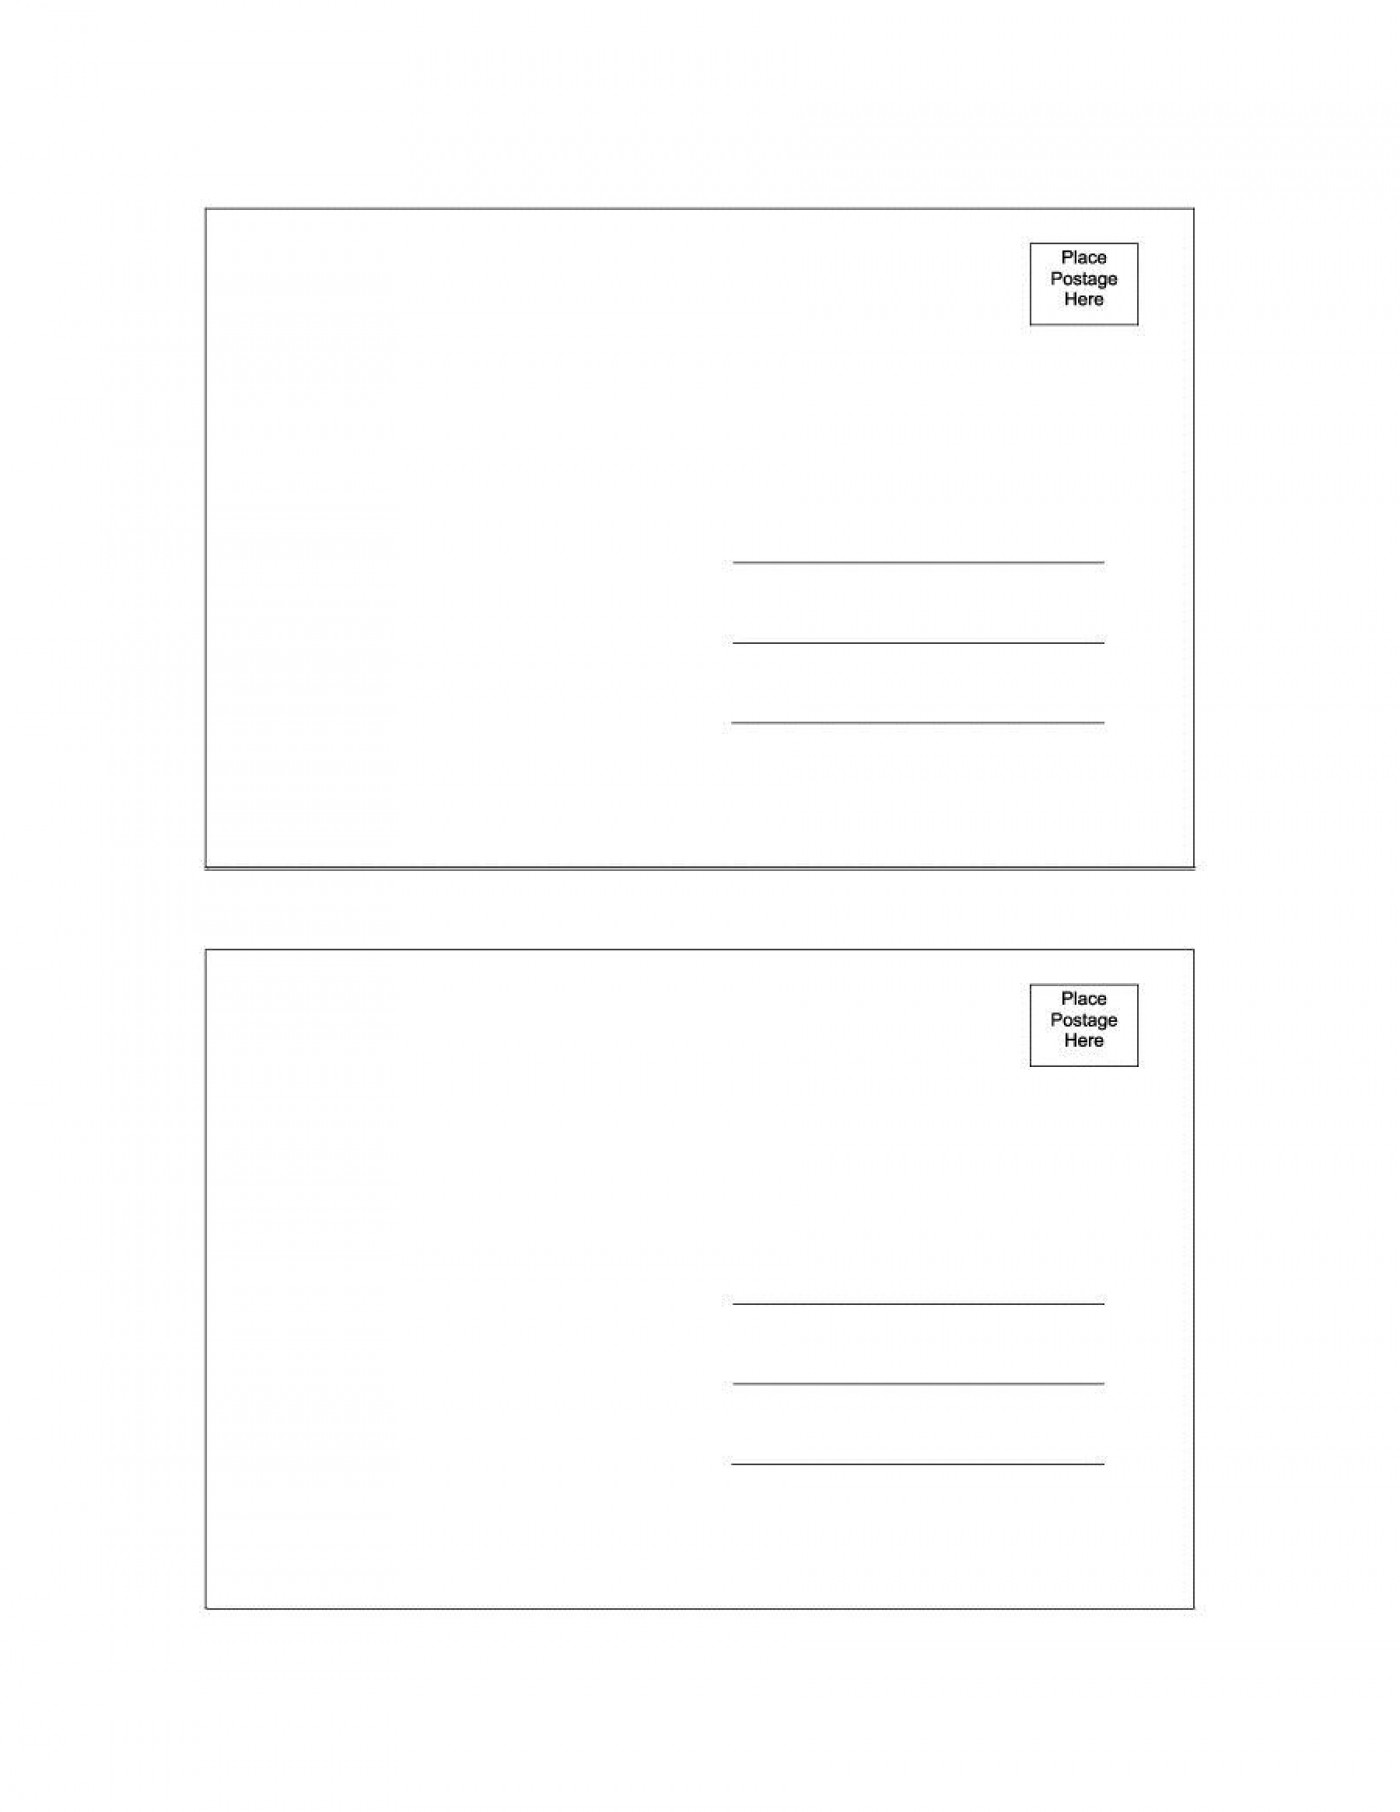 000 Amazing Postcard Layout For Microsoft Word Photo  Busines Template1400